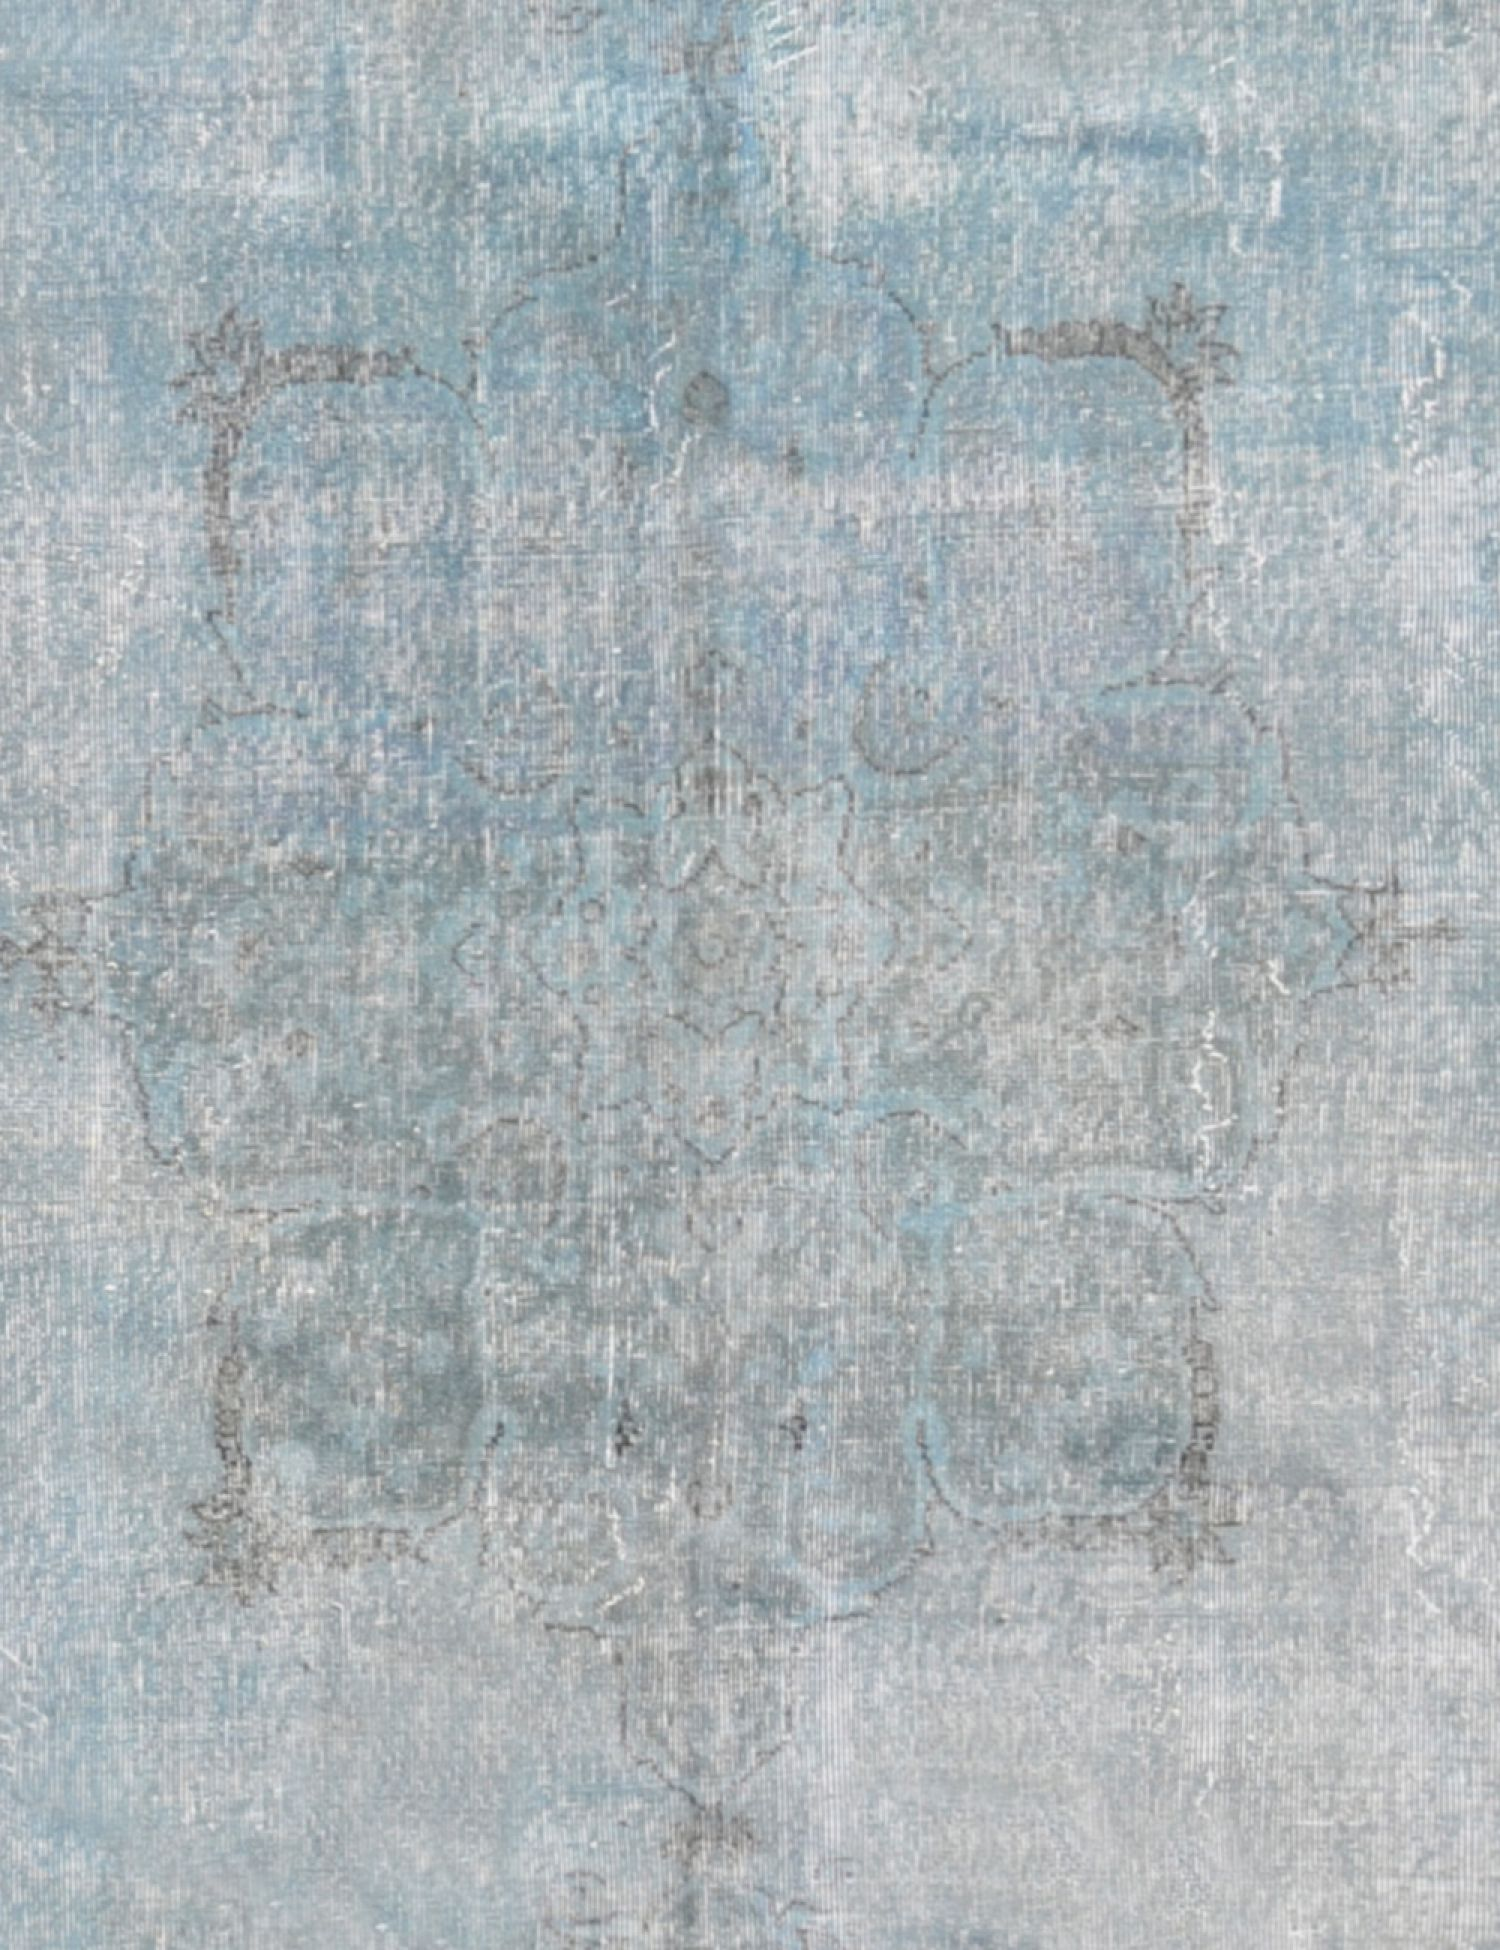 Vintage Carpet  blue <br/>344 x 253 cm